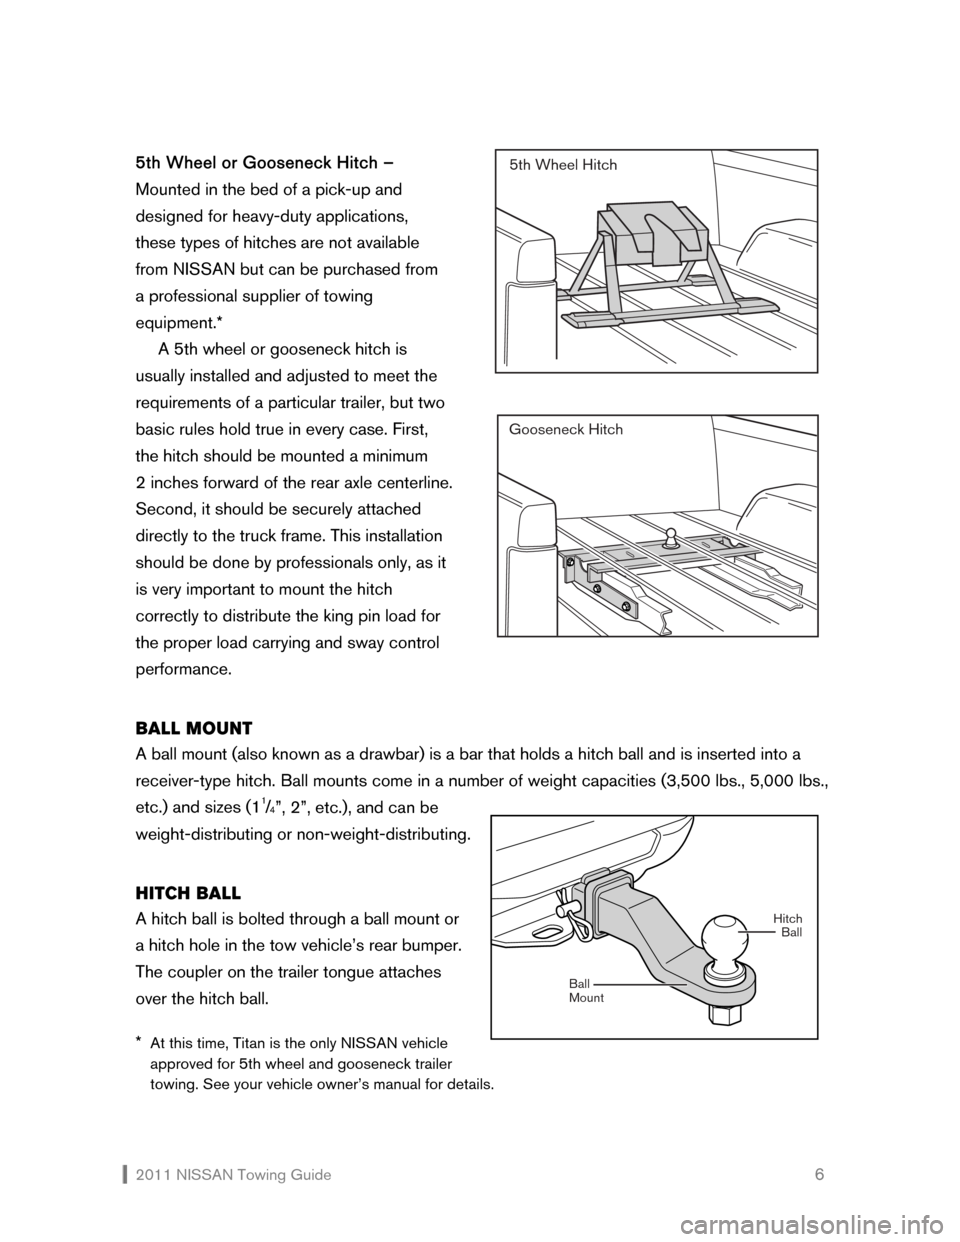 NISSAN XTERRA 2011 N50 / 2.G Towing Guide, Page 7